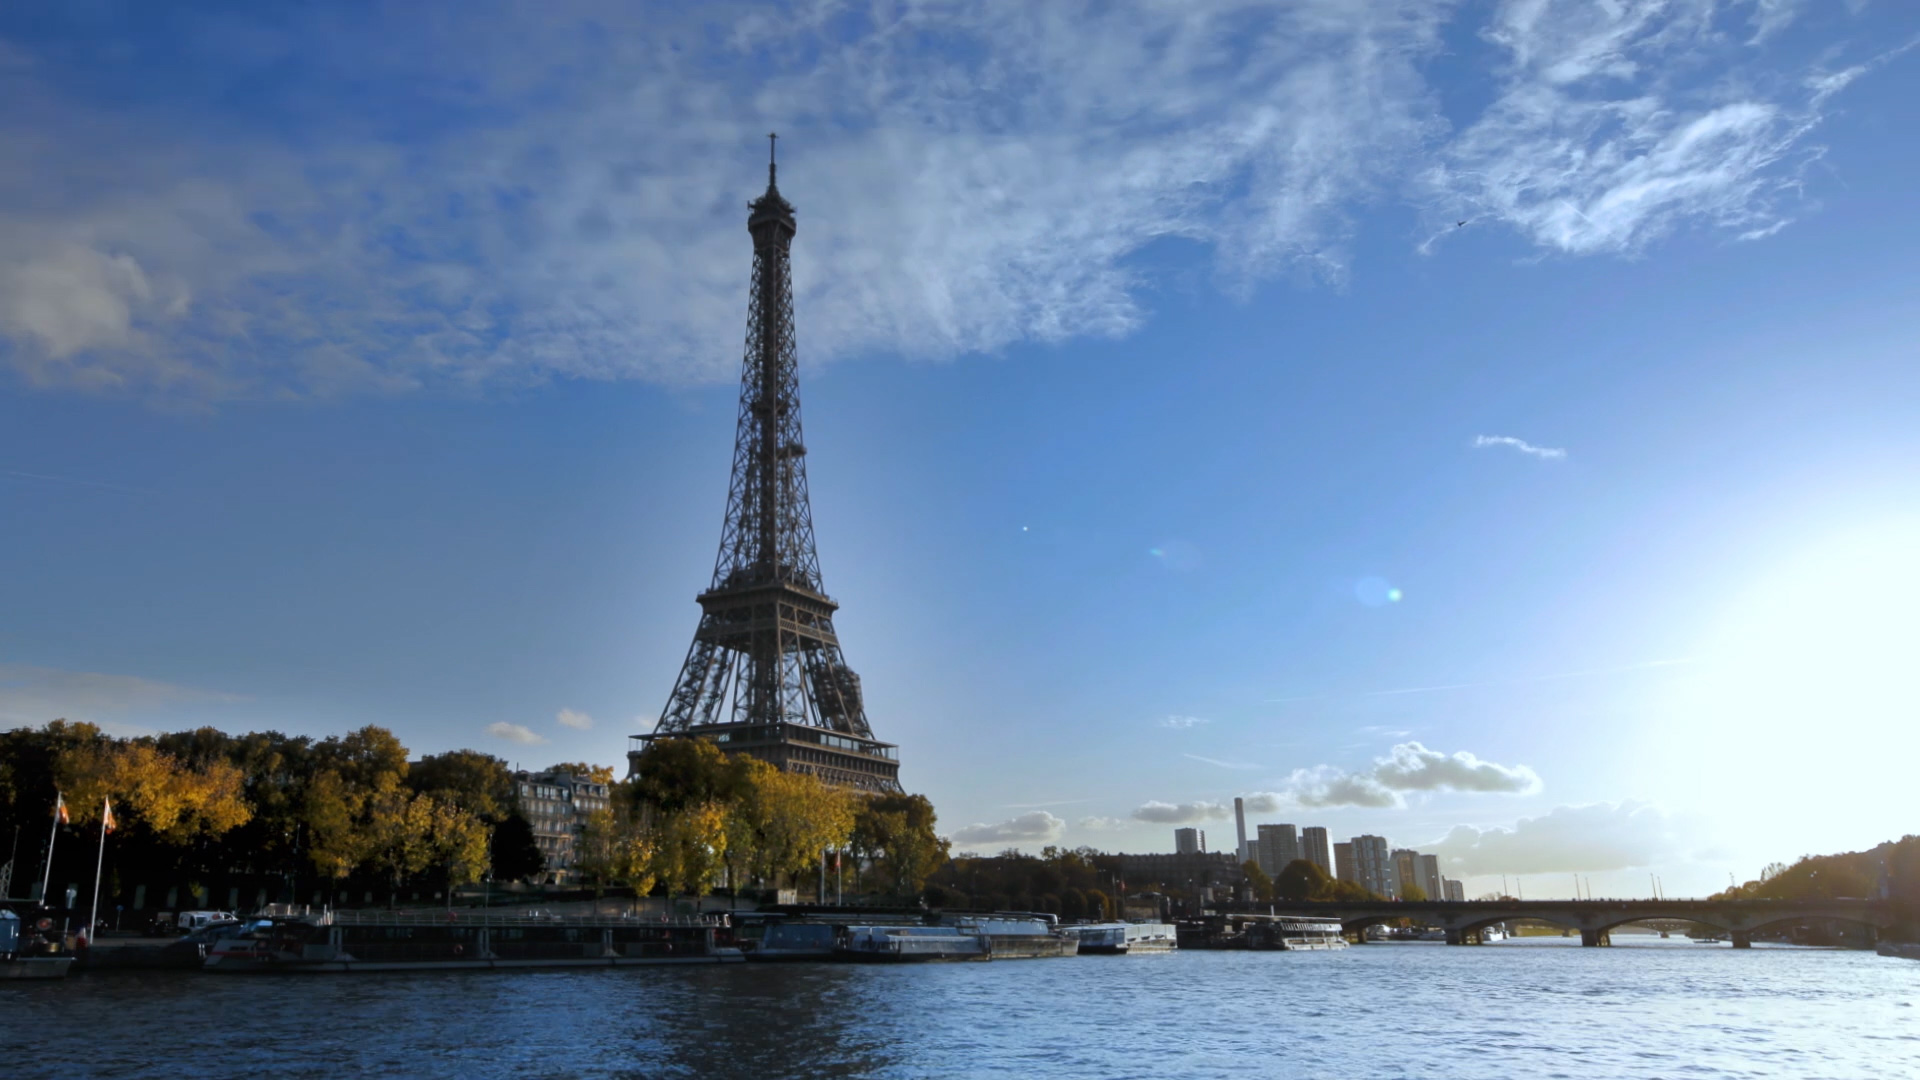 You can own a step of the Eiffel Tower for a price